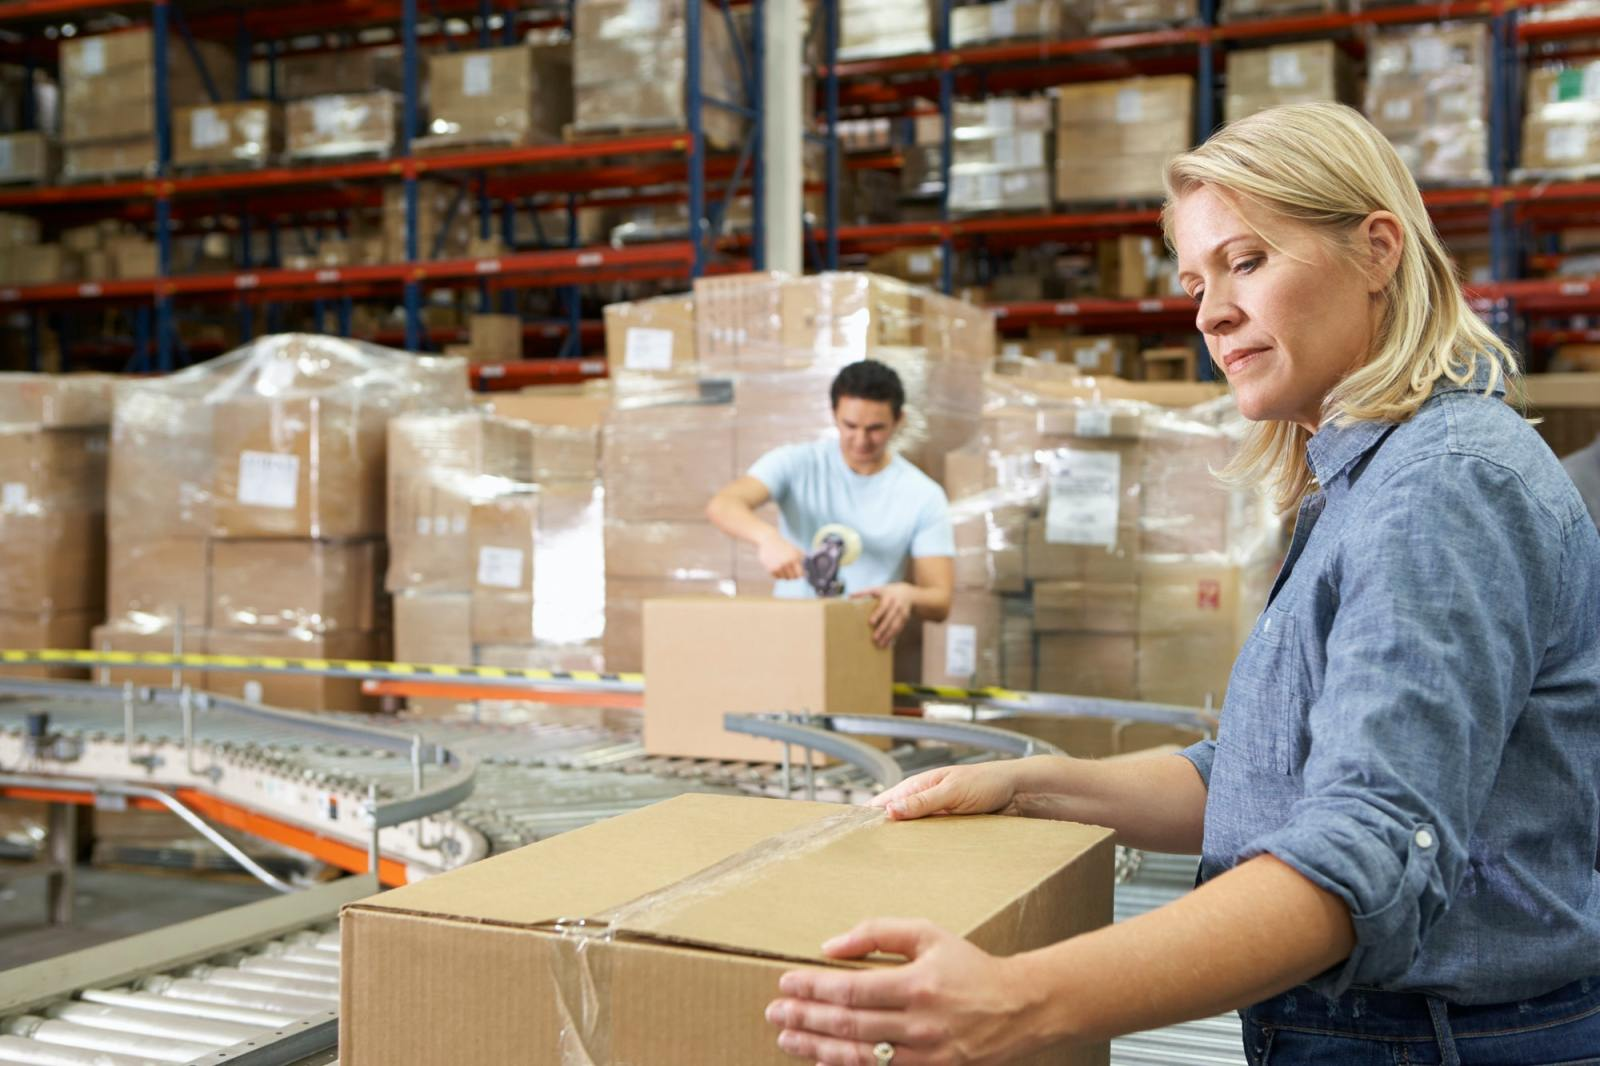 ecommerce warehousing and fulfillment solution